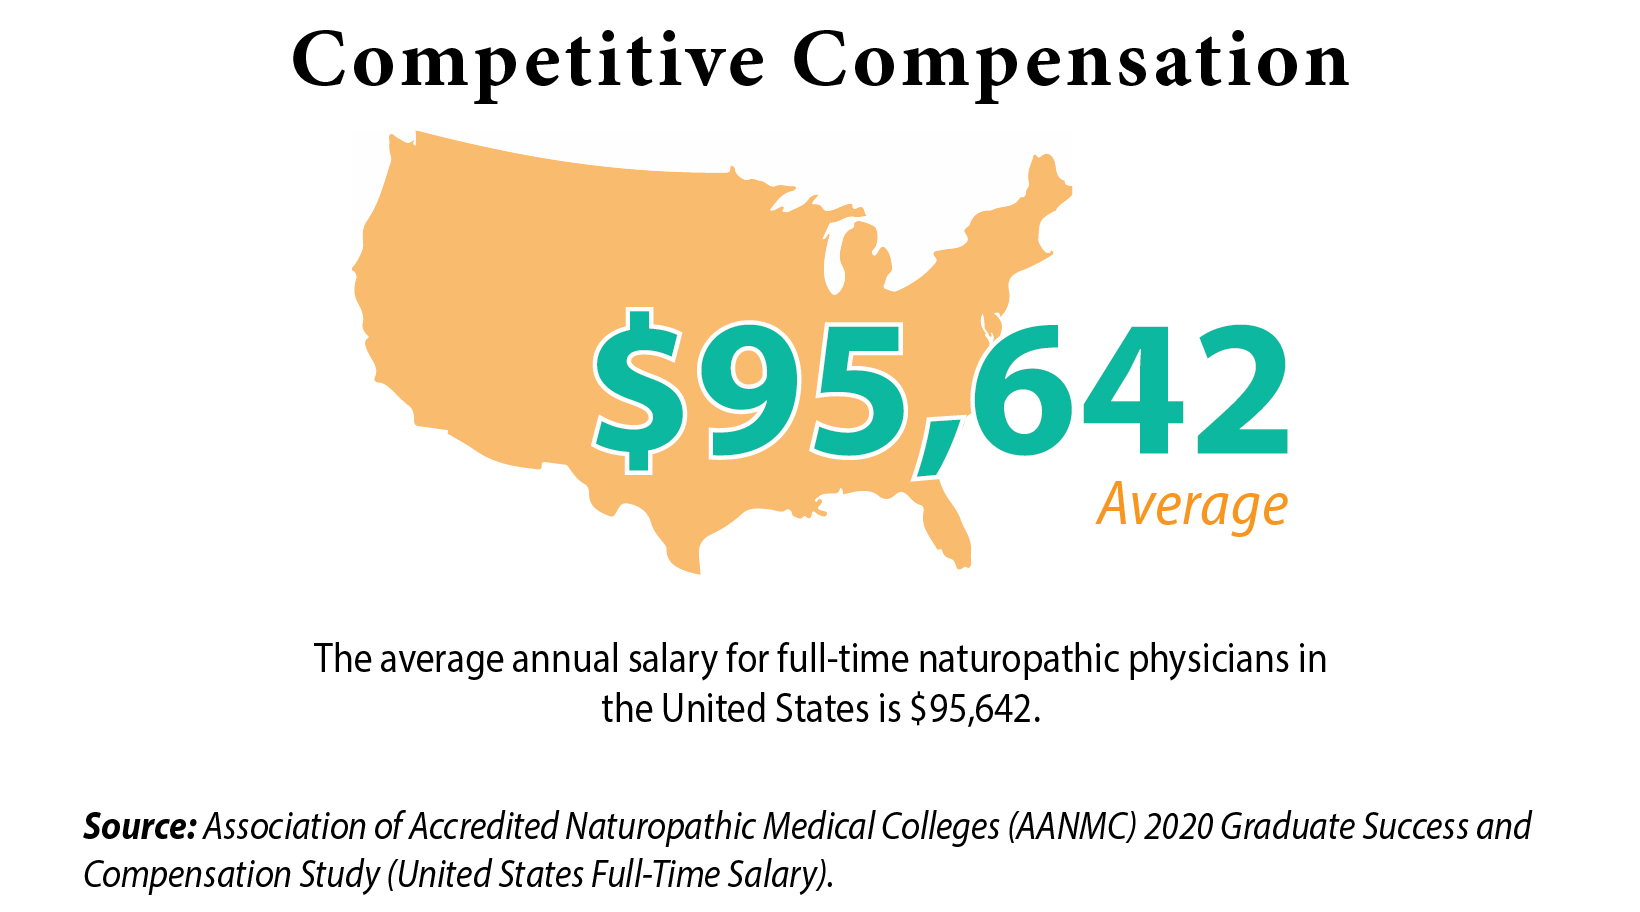 competitive compensation $95,642 average salary